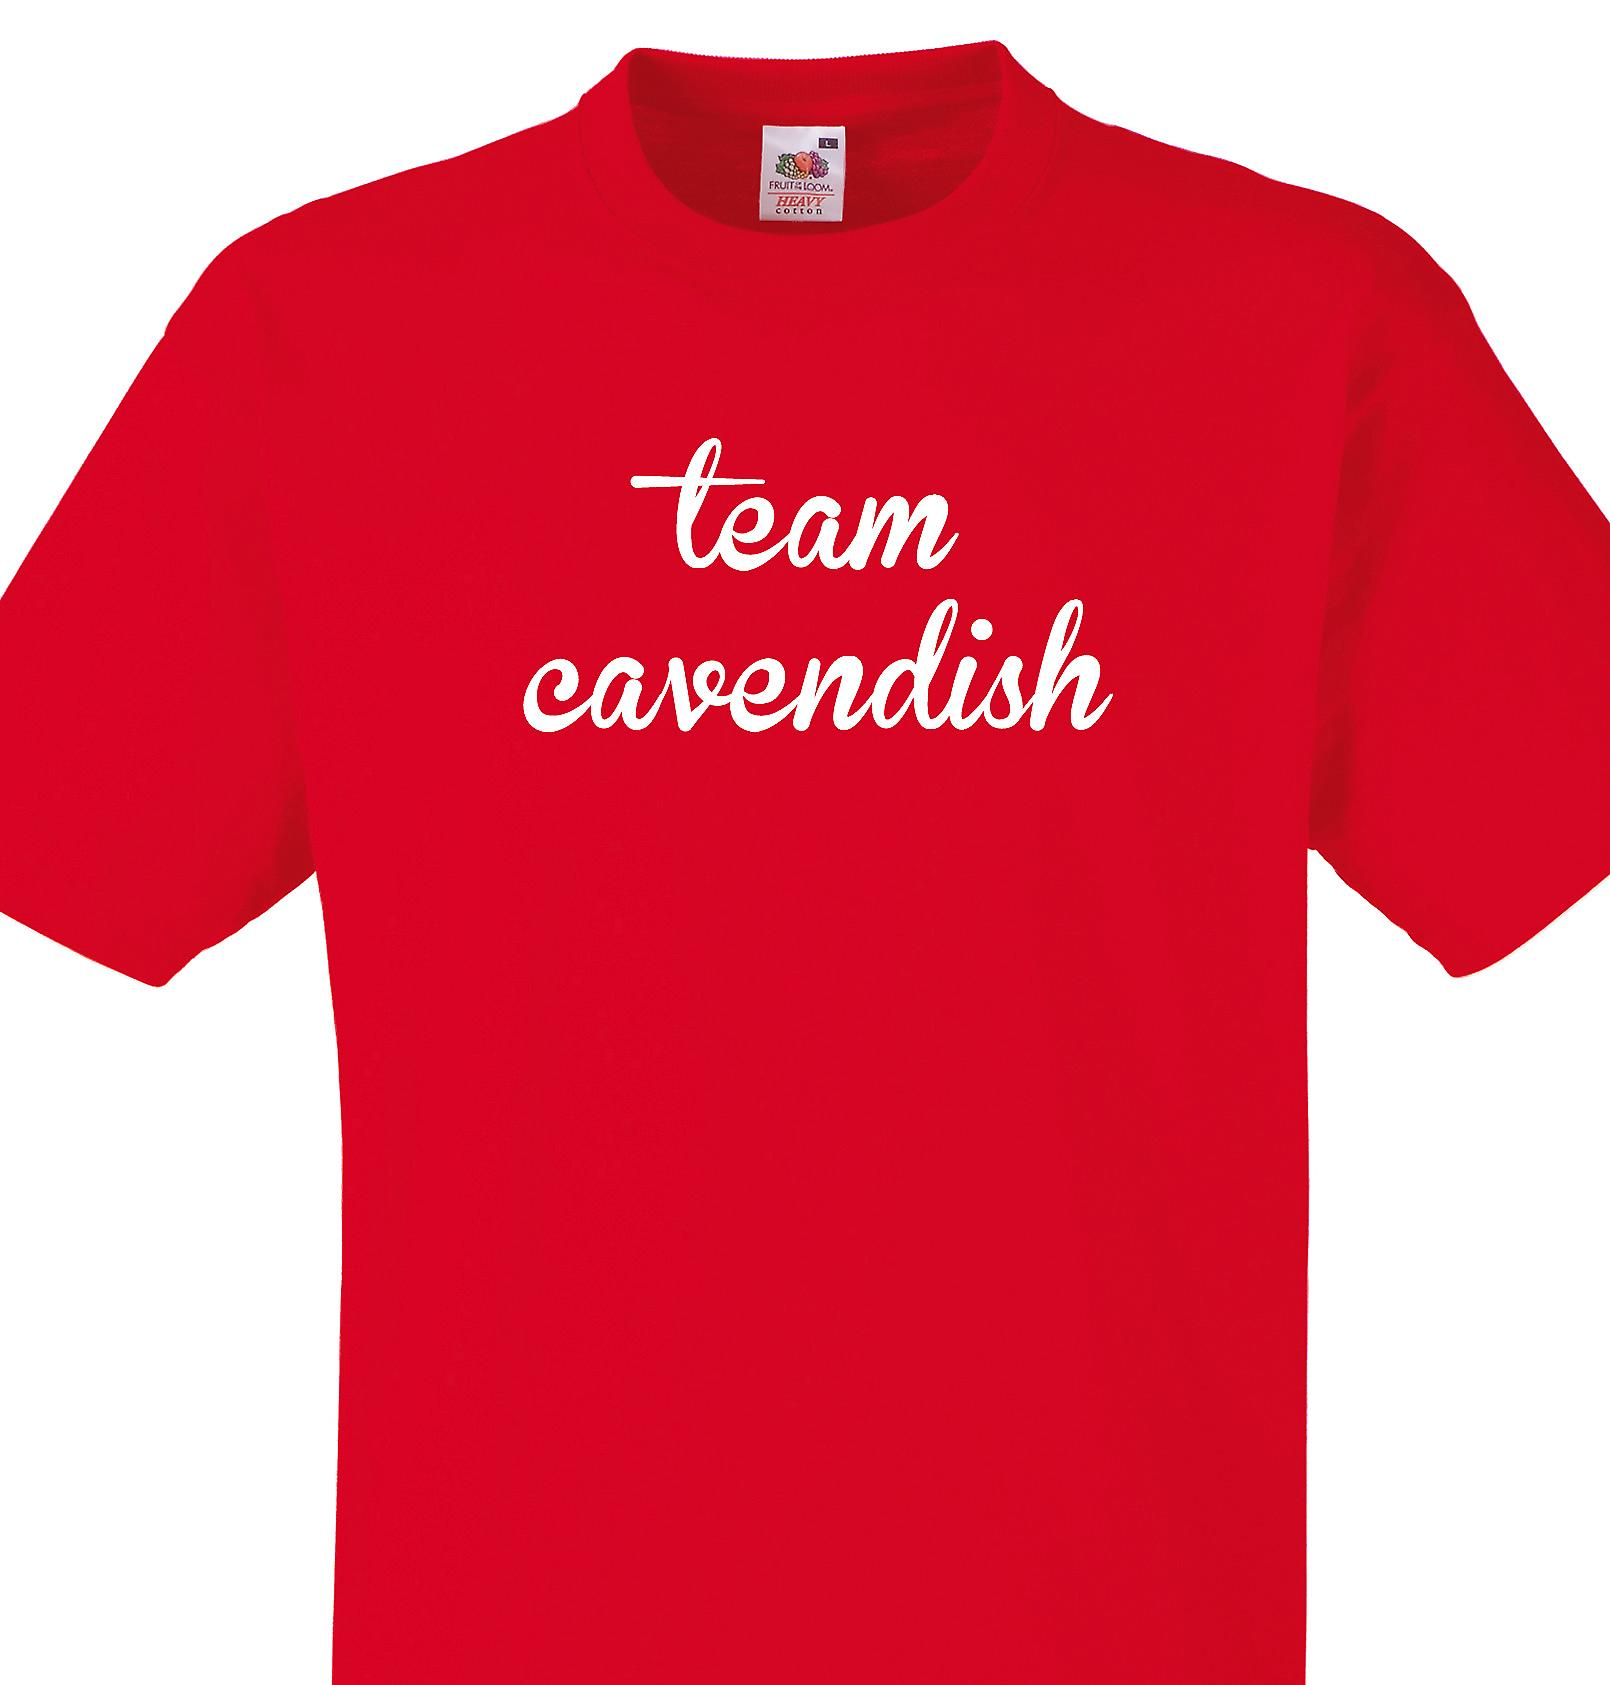 Team Cavendish Red T shirt